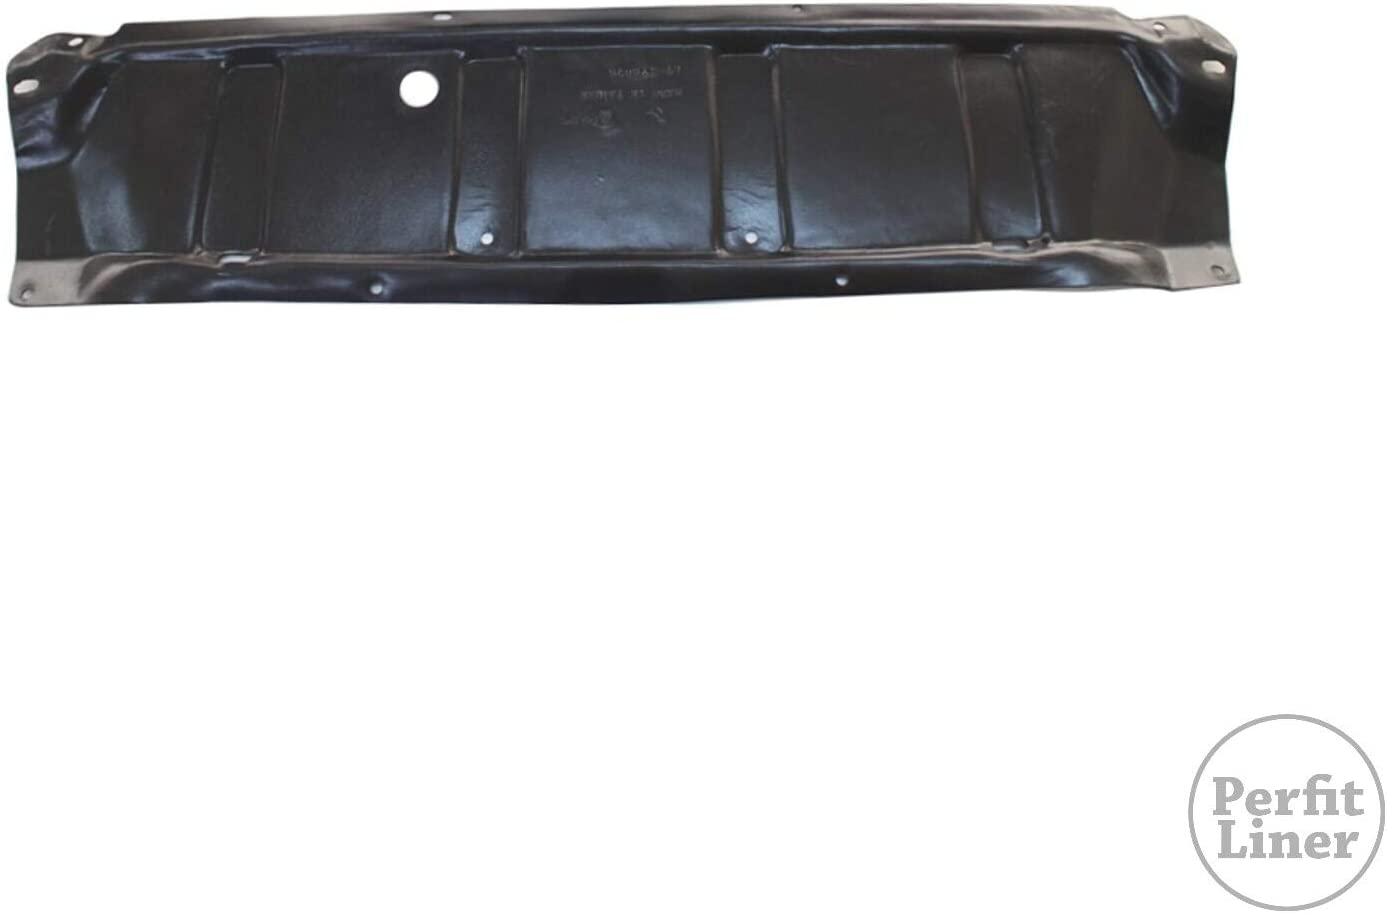 Perfit Liner New Replacement Parts Front Lower Engine Cover For Highlander Fits TO1228142 5144148020